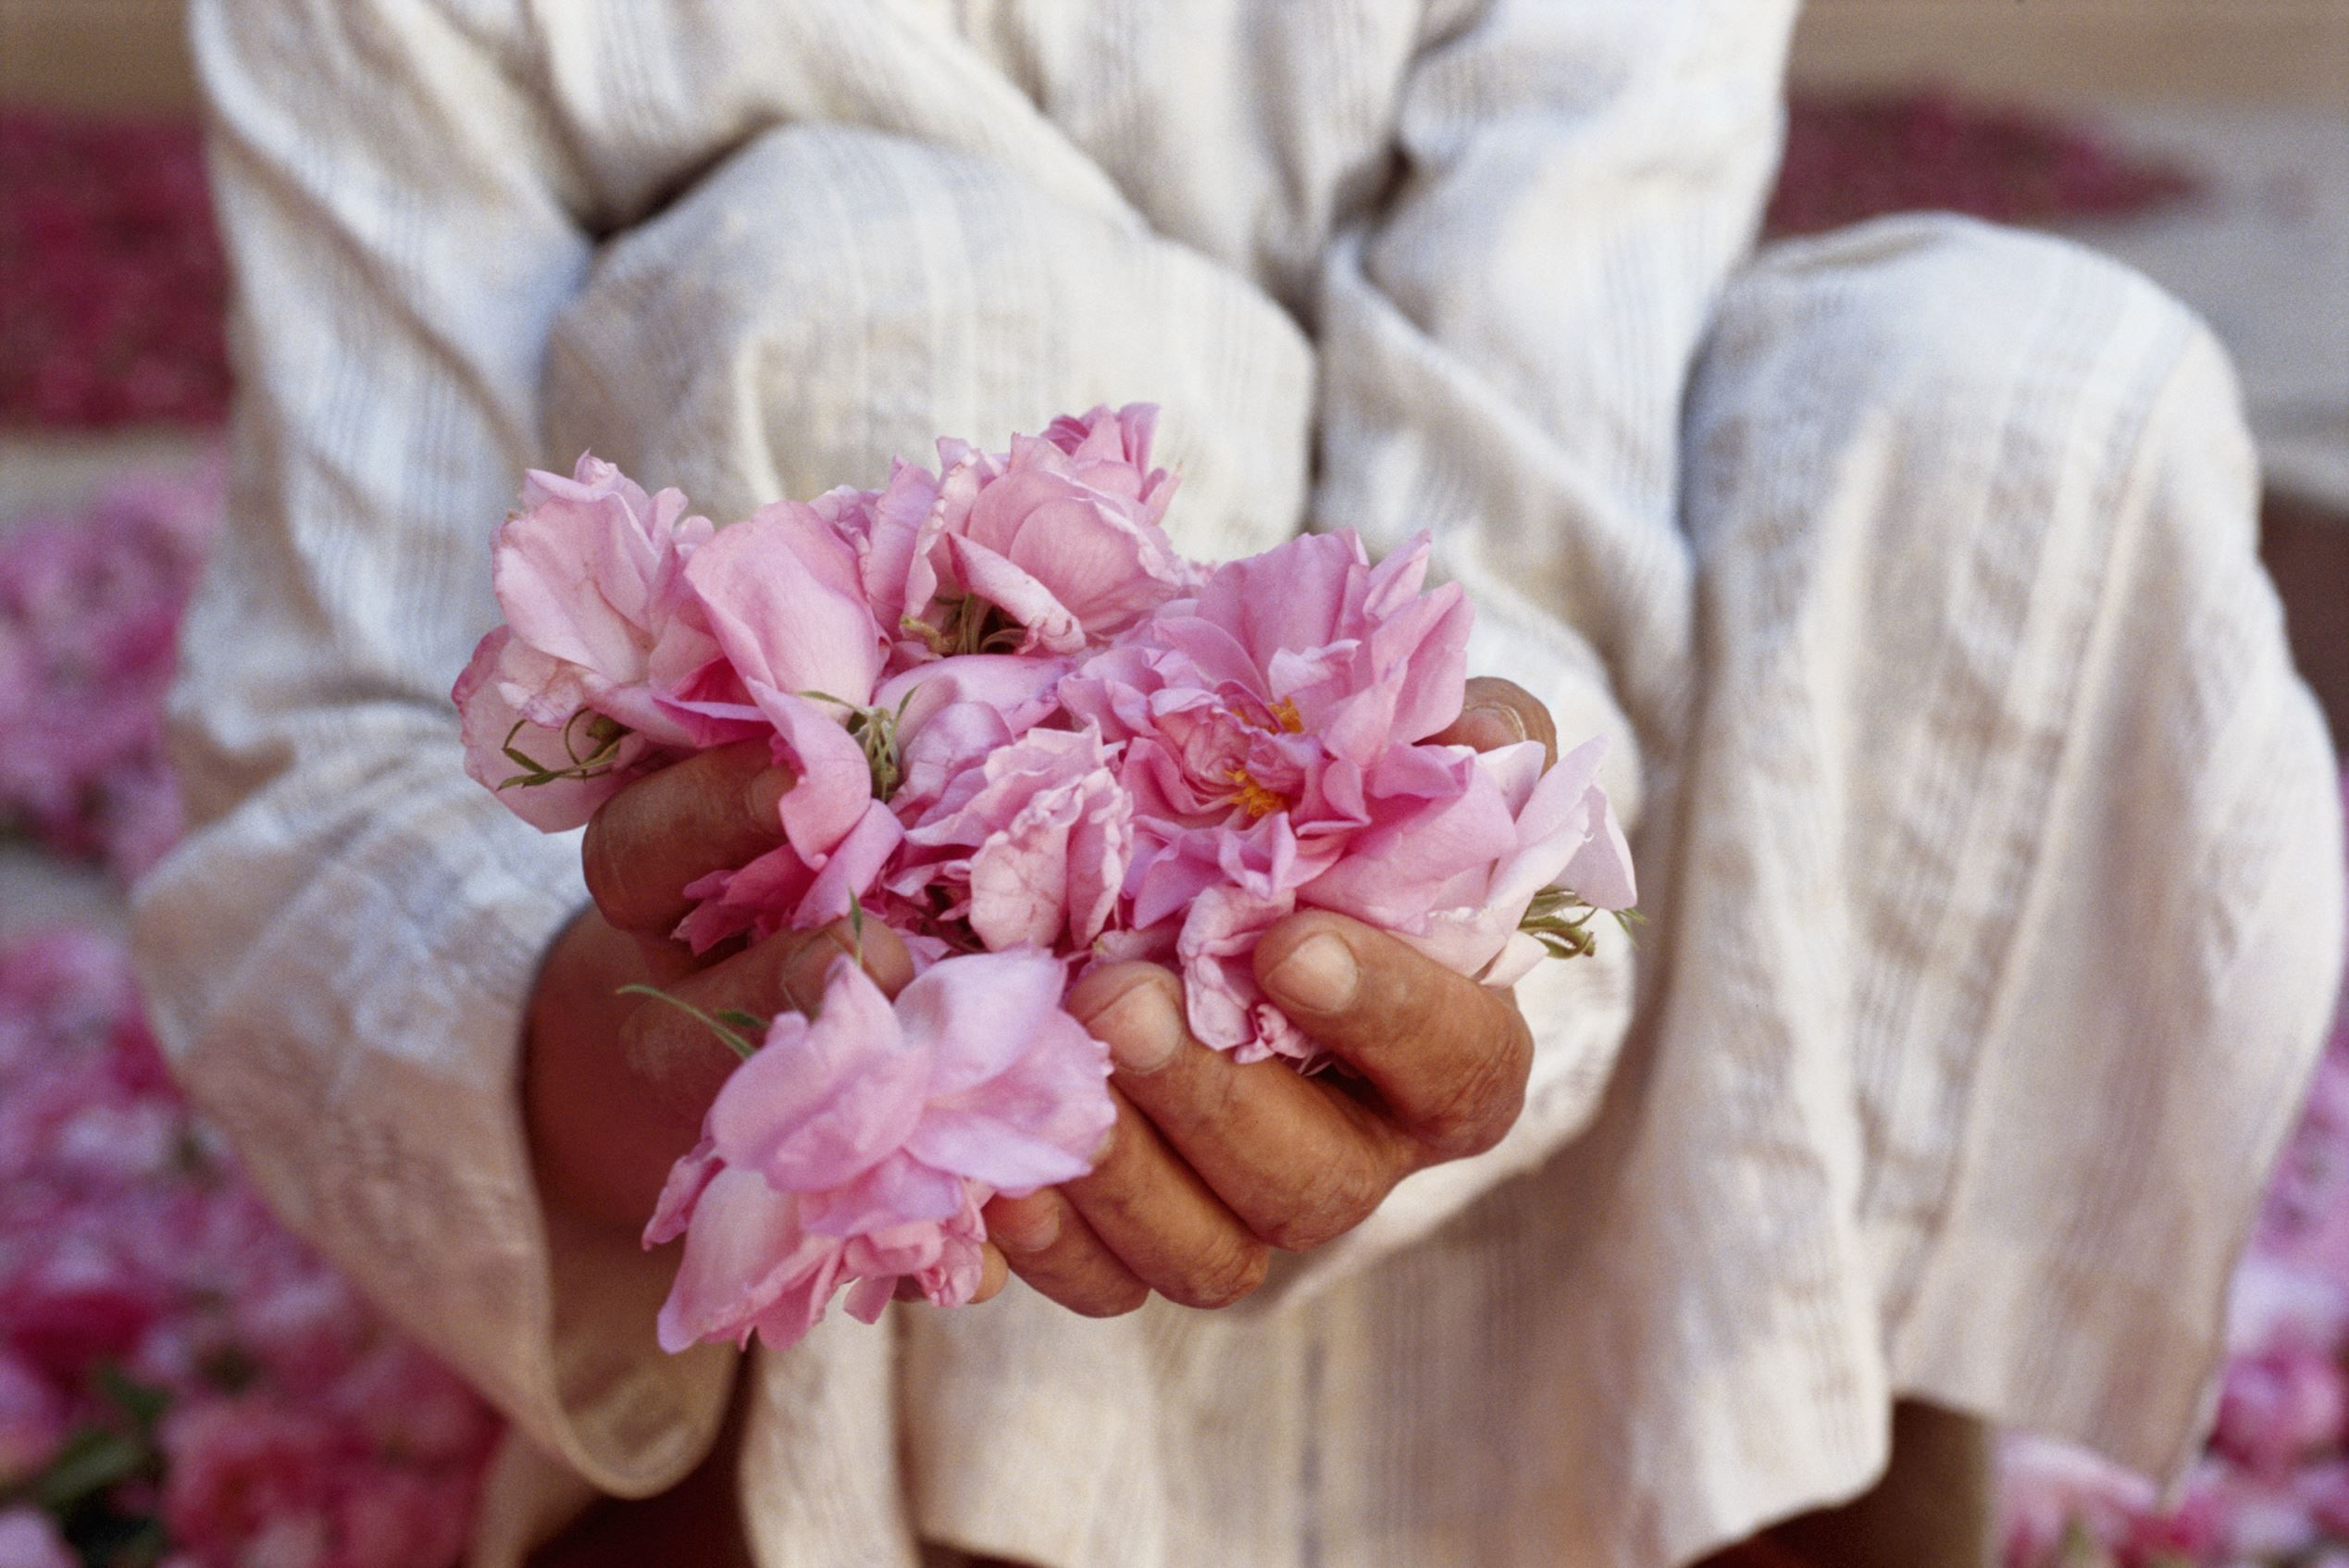 May festivals around the world Morocco, Rose petals